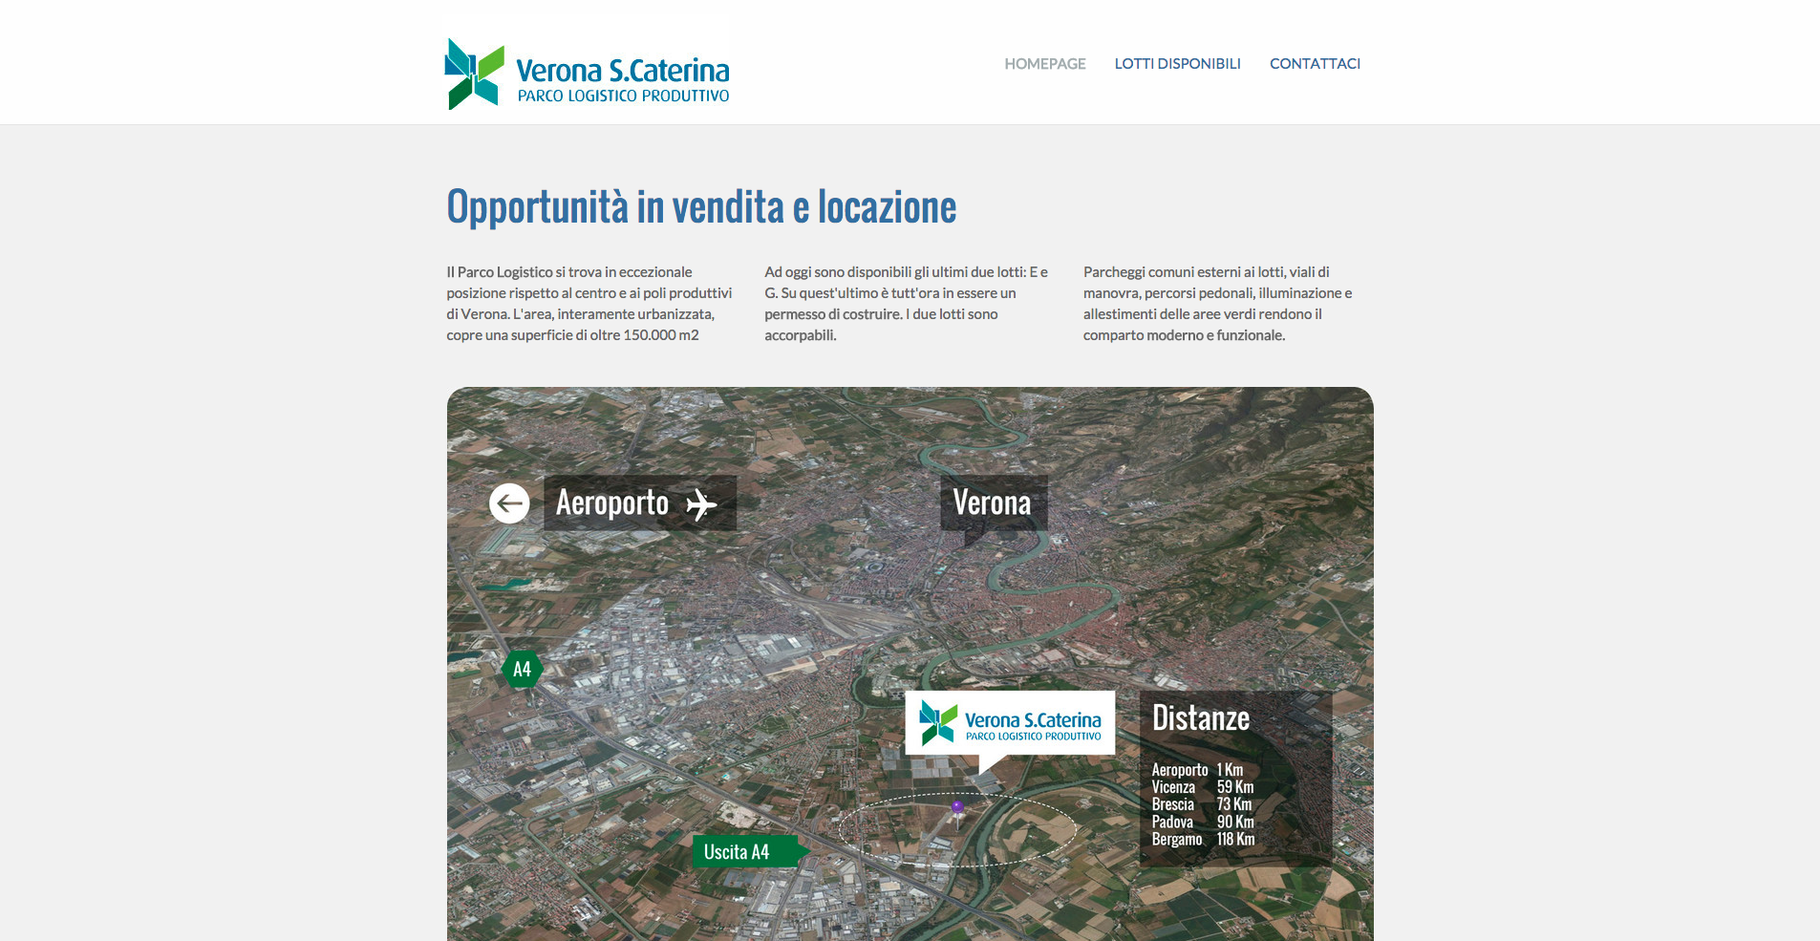 http://www.industrialesantacaterina.it/